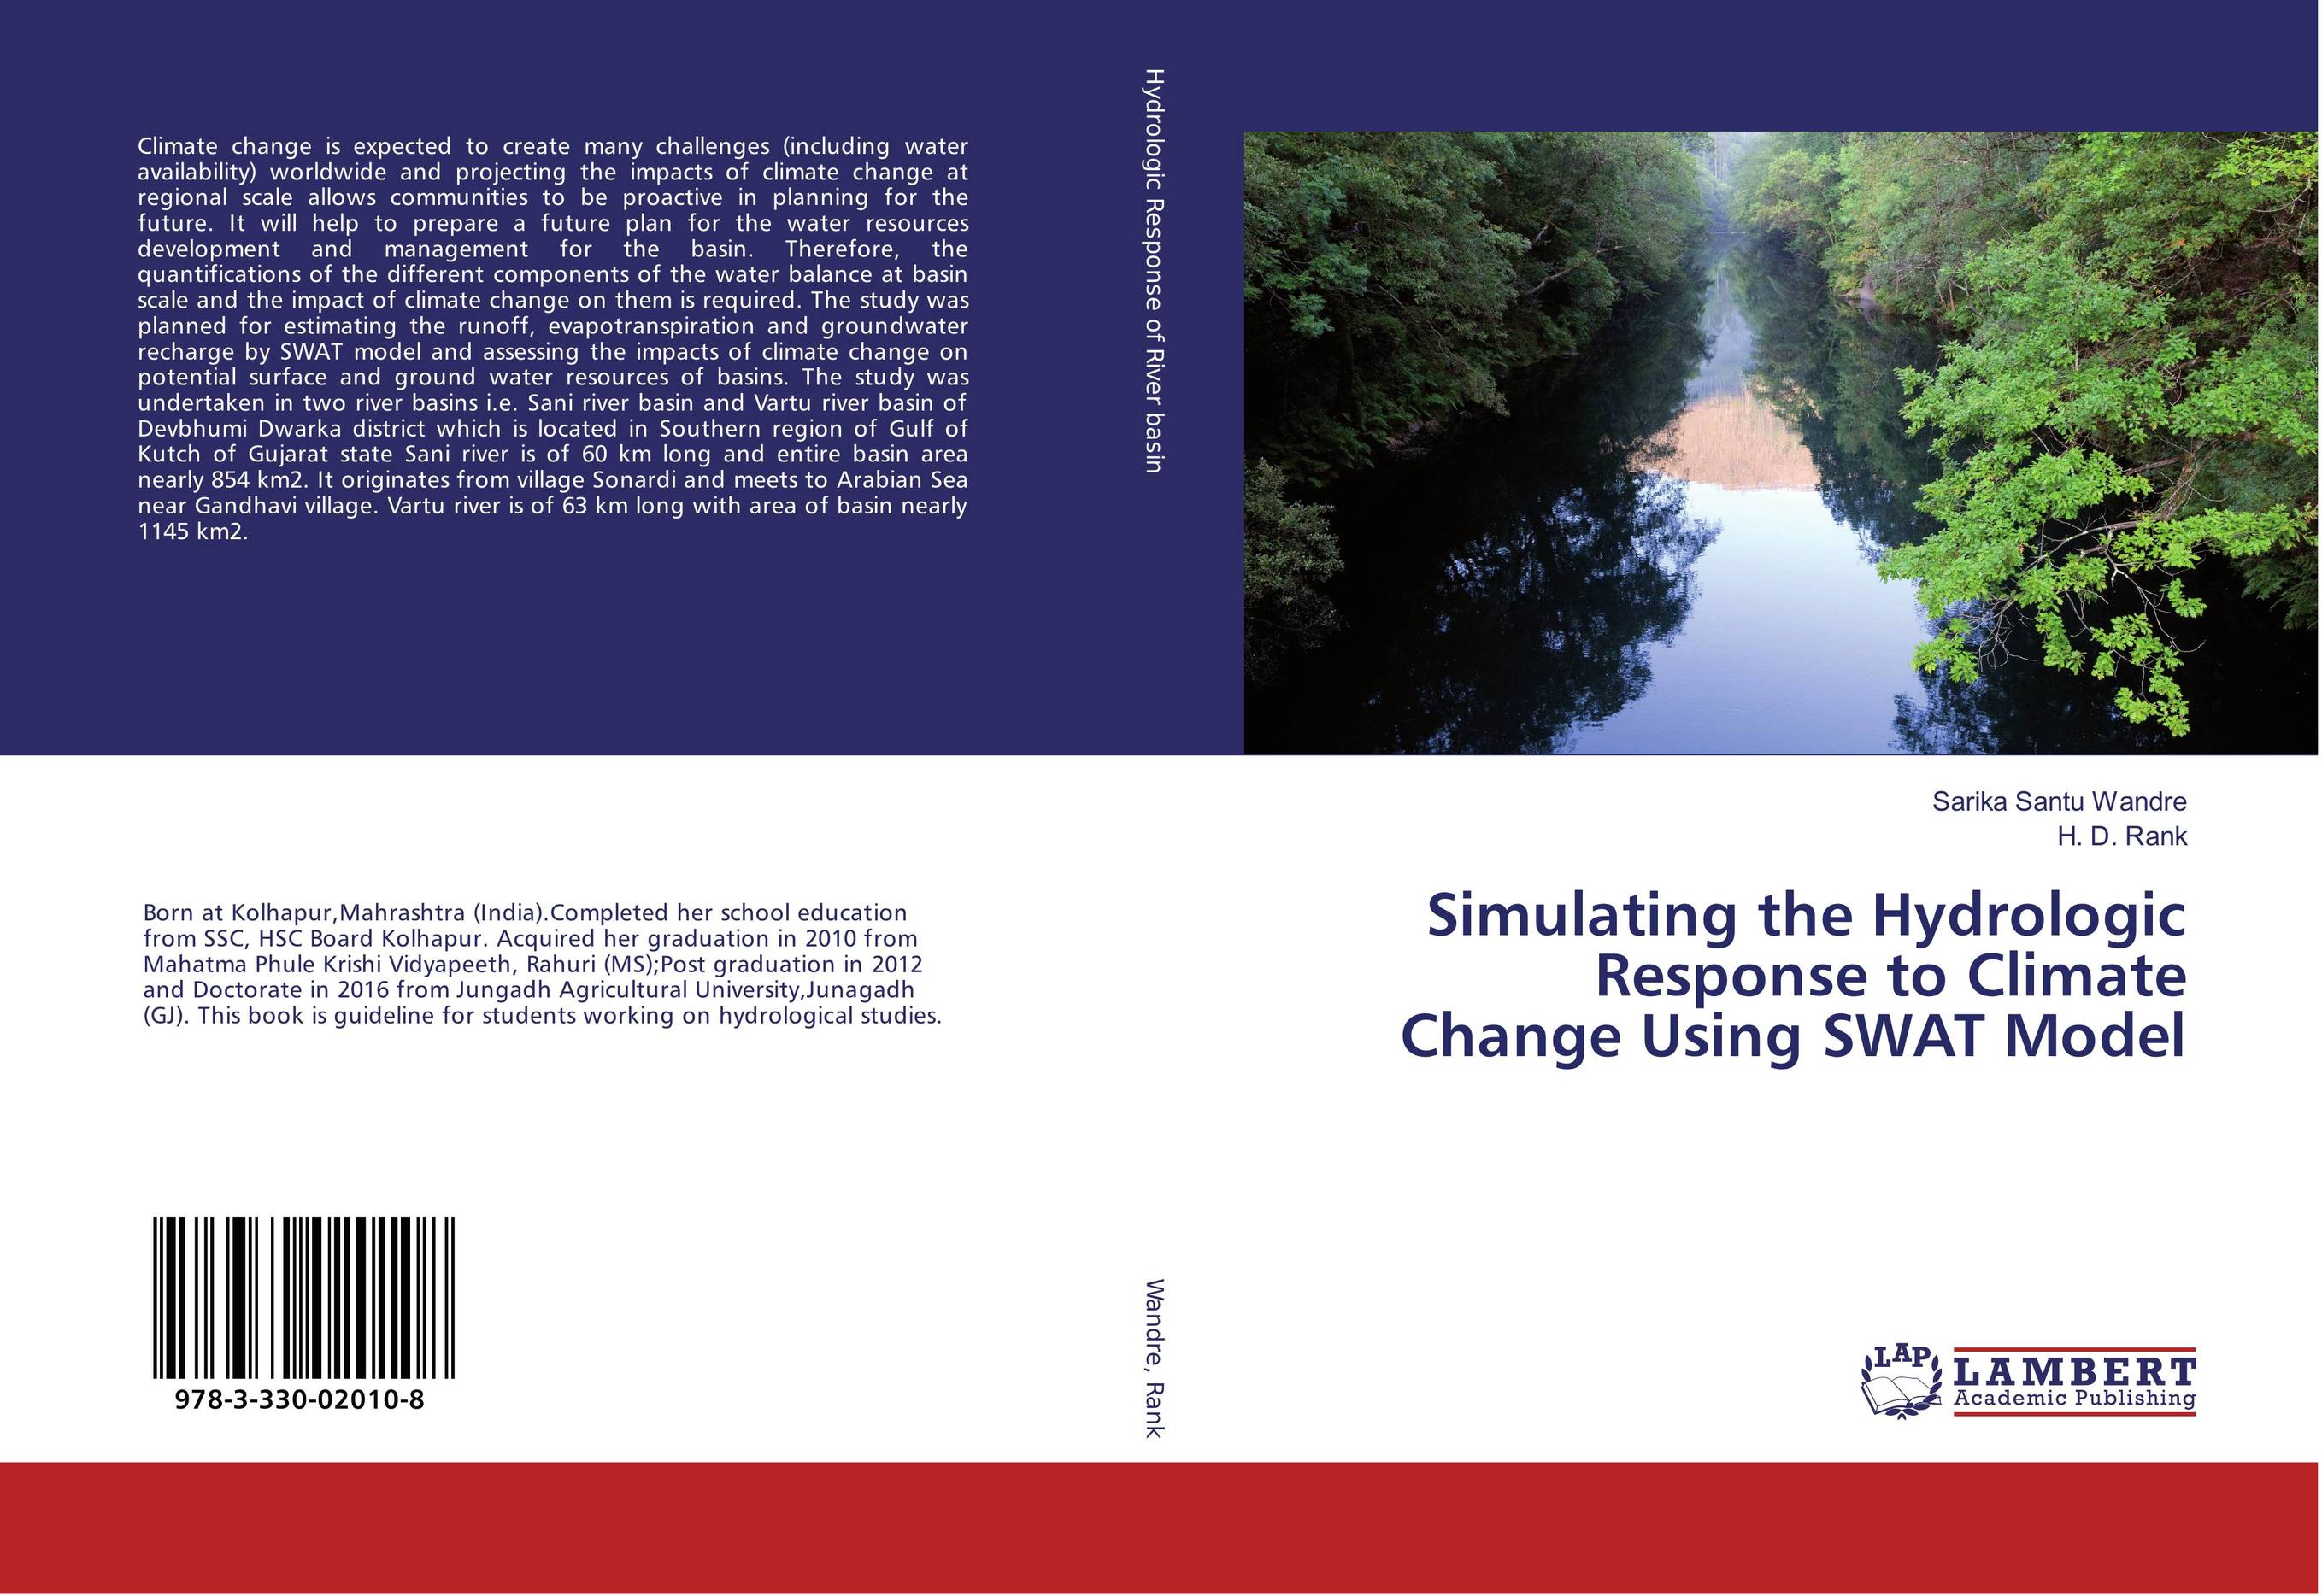 9783330020108 Simulating the Hydrologic Response to Climate Channg SWAT Model